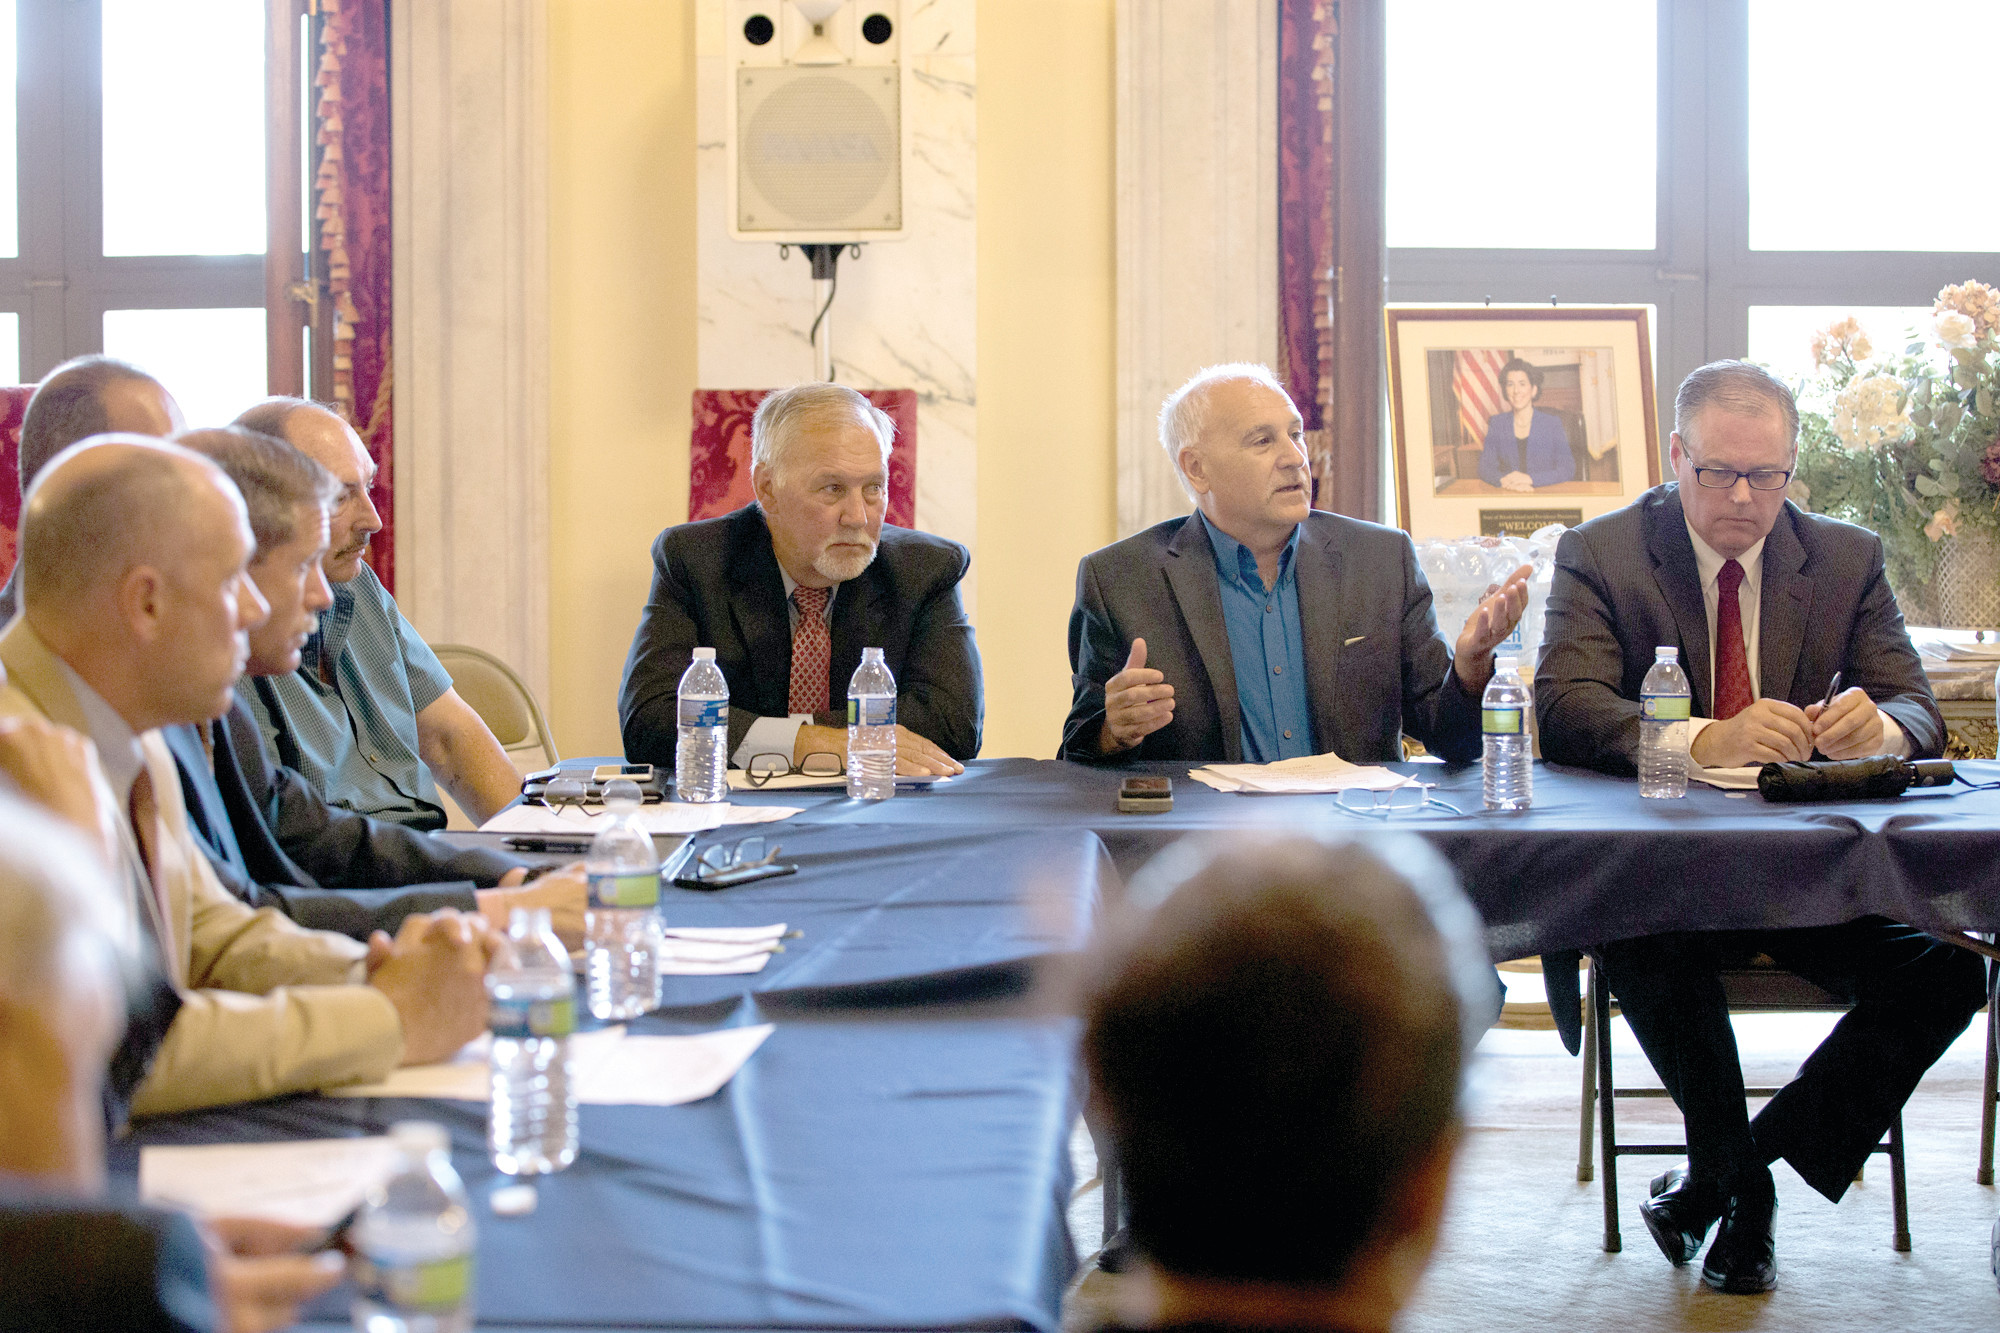 IMPASSE RESOLVED: Mayor Joseph Polisena joined other town administrators and mayors at a meeting recently convened by Governor Gina Raimondo regarding the legislative budget impasse.